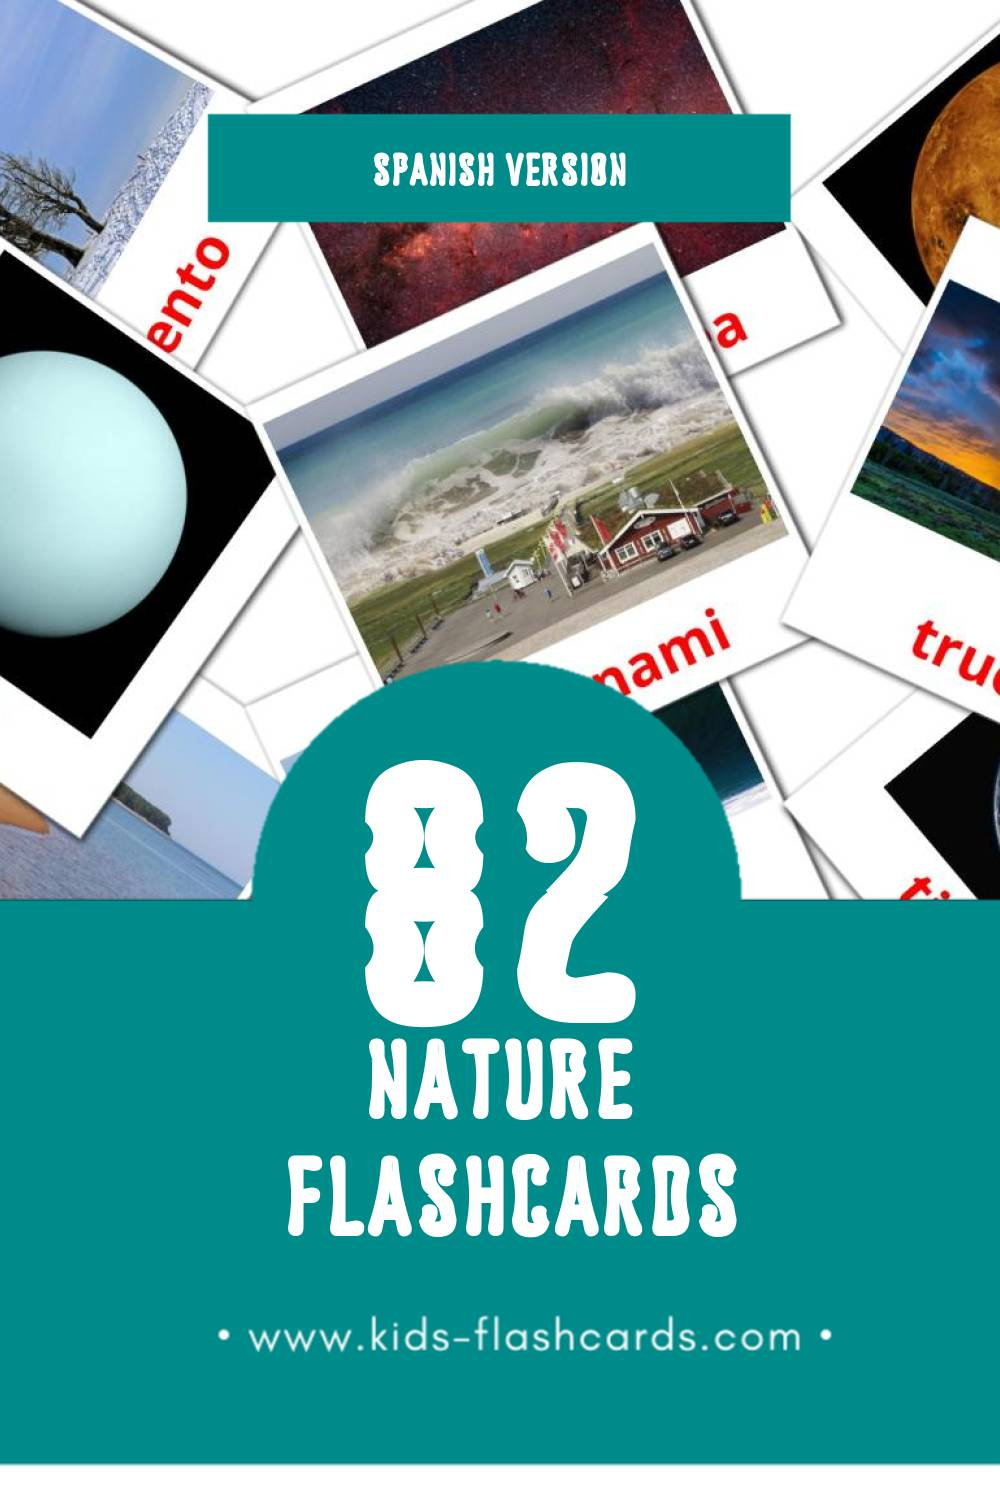 Visual Naturaleza Flashcards for Toddlers (31 cards in Spanish)